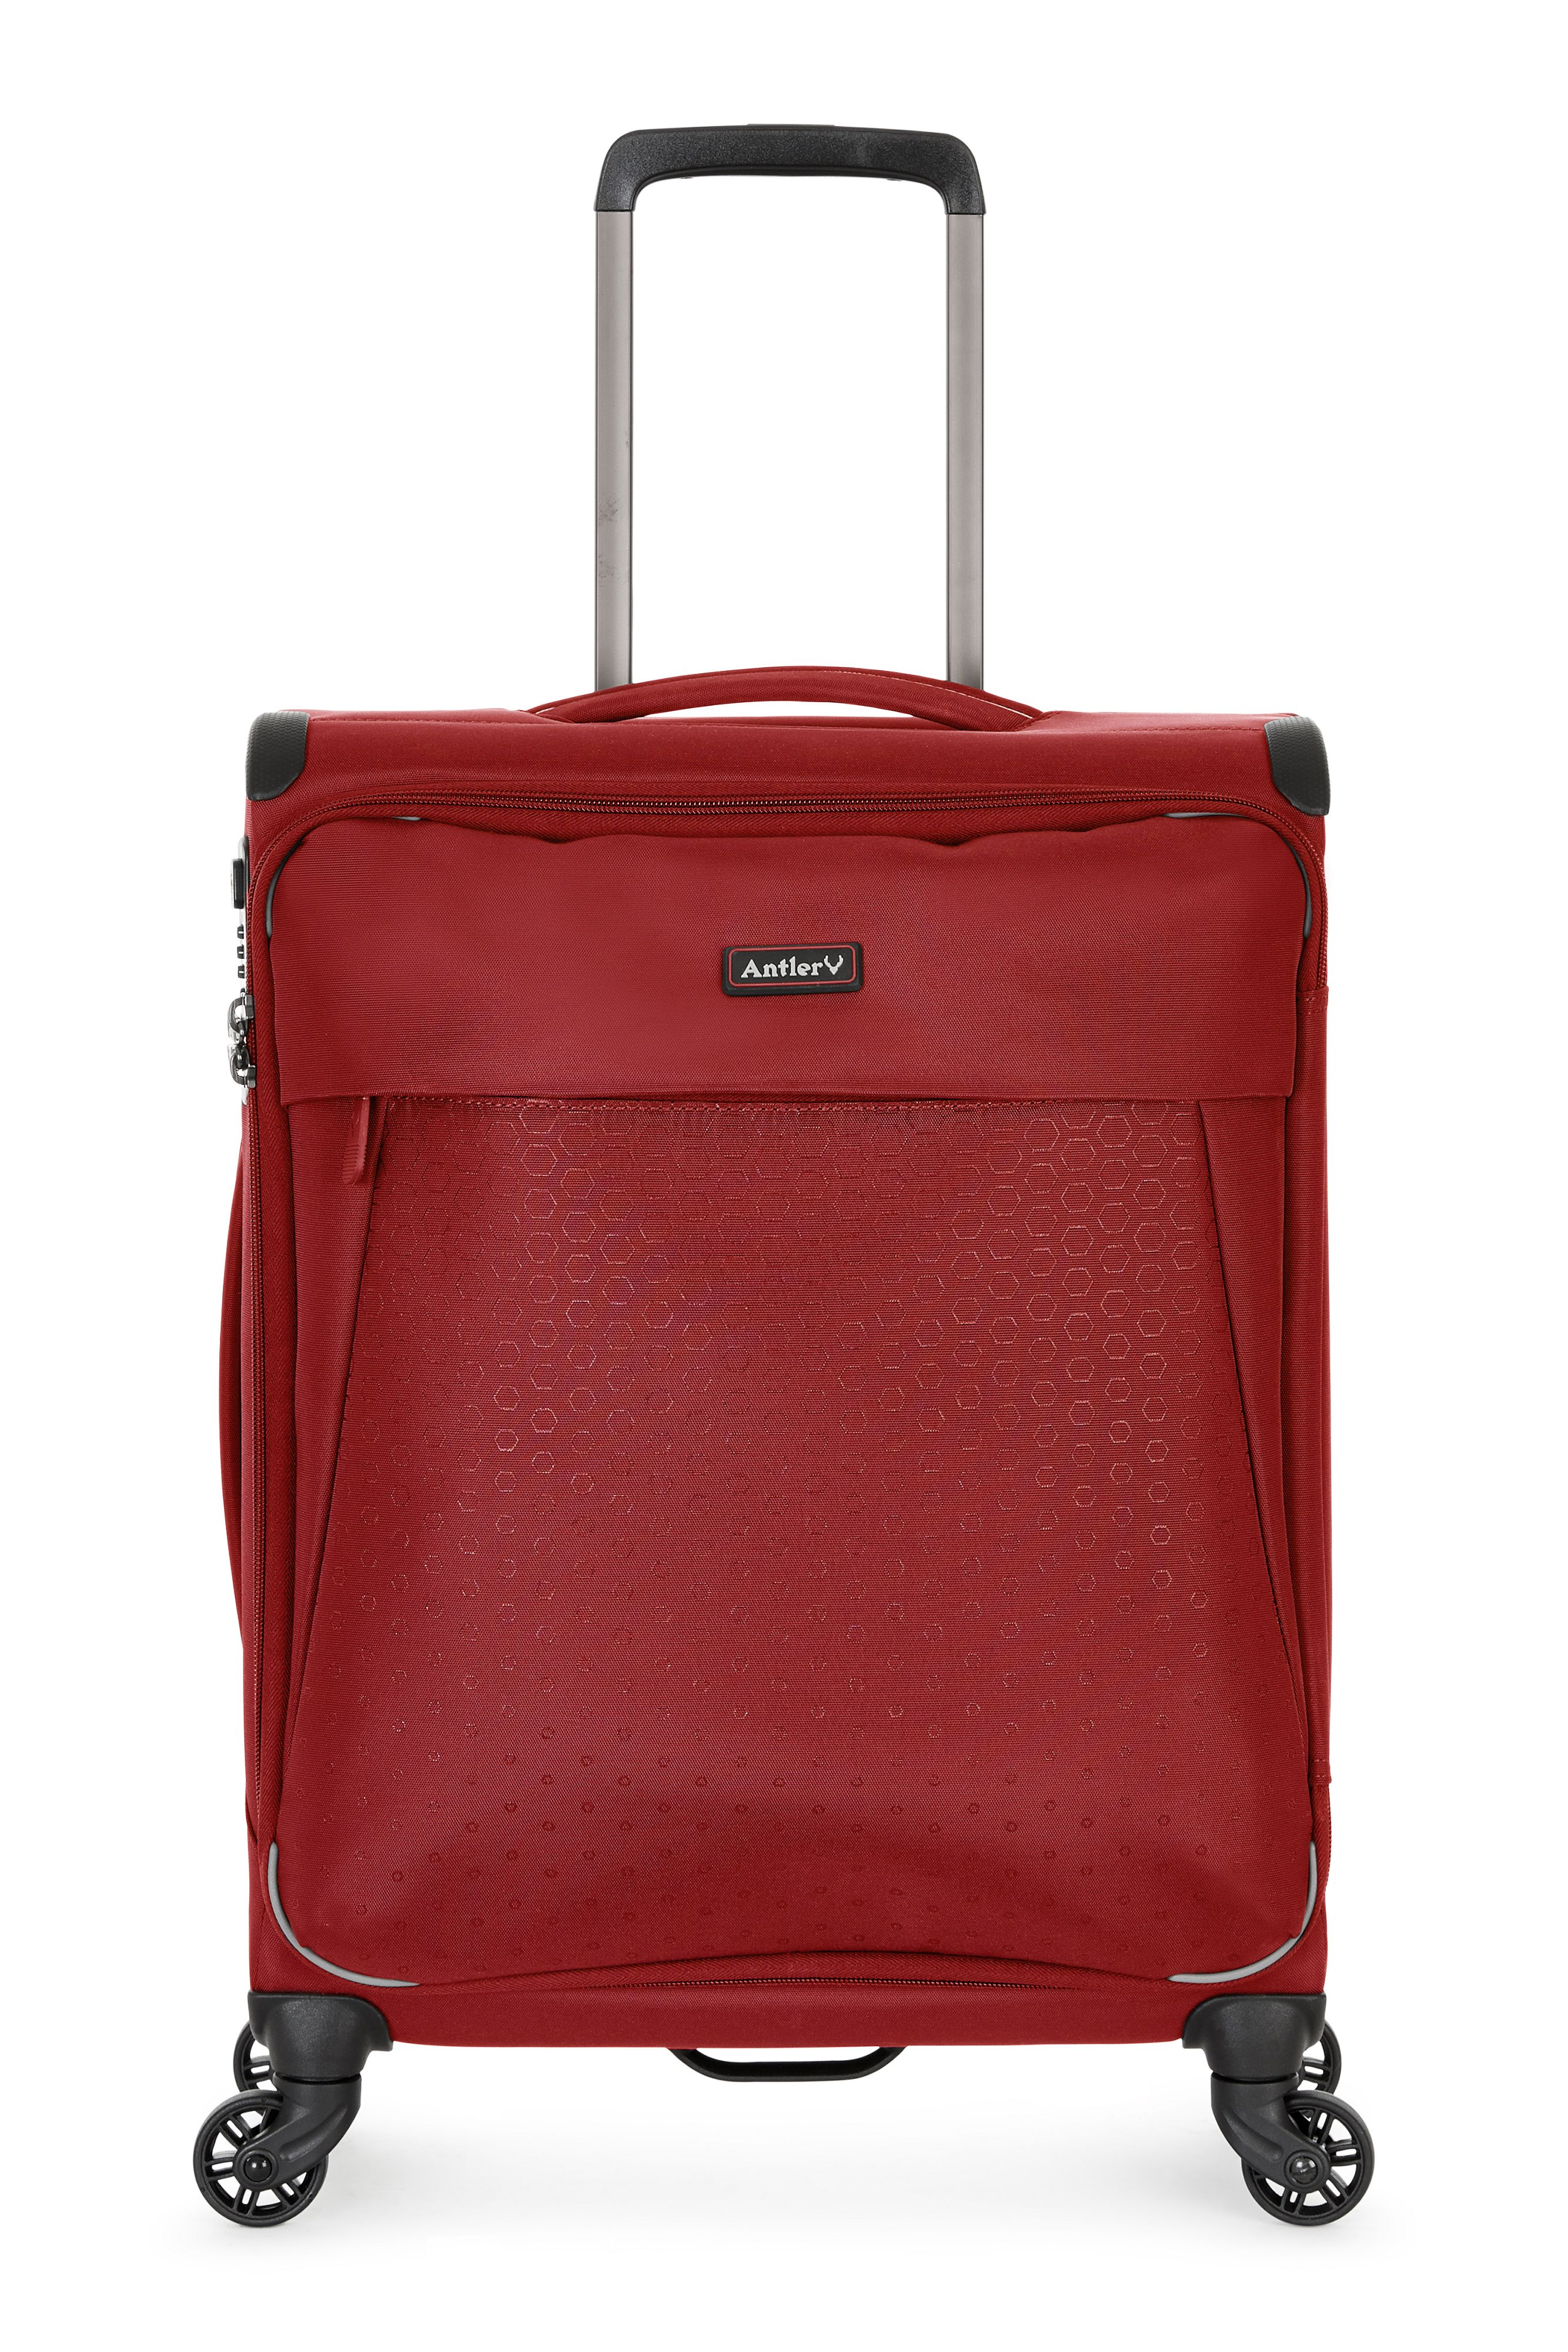 Antler OXYGEN RED 4 WHEEL SOFT CABIN SUITCASE, Red